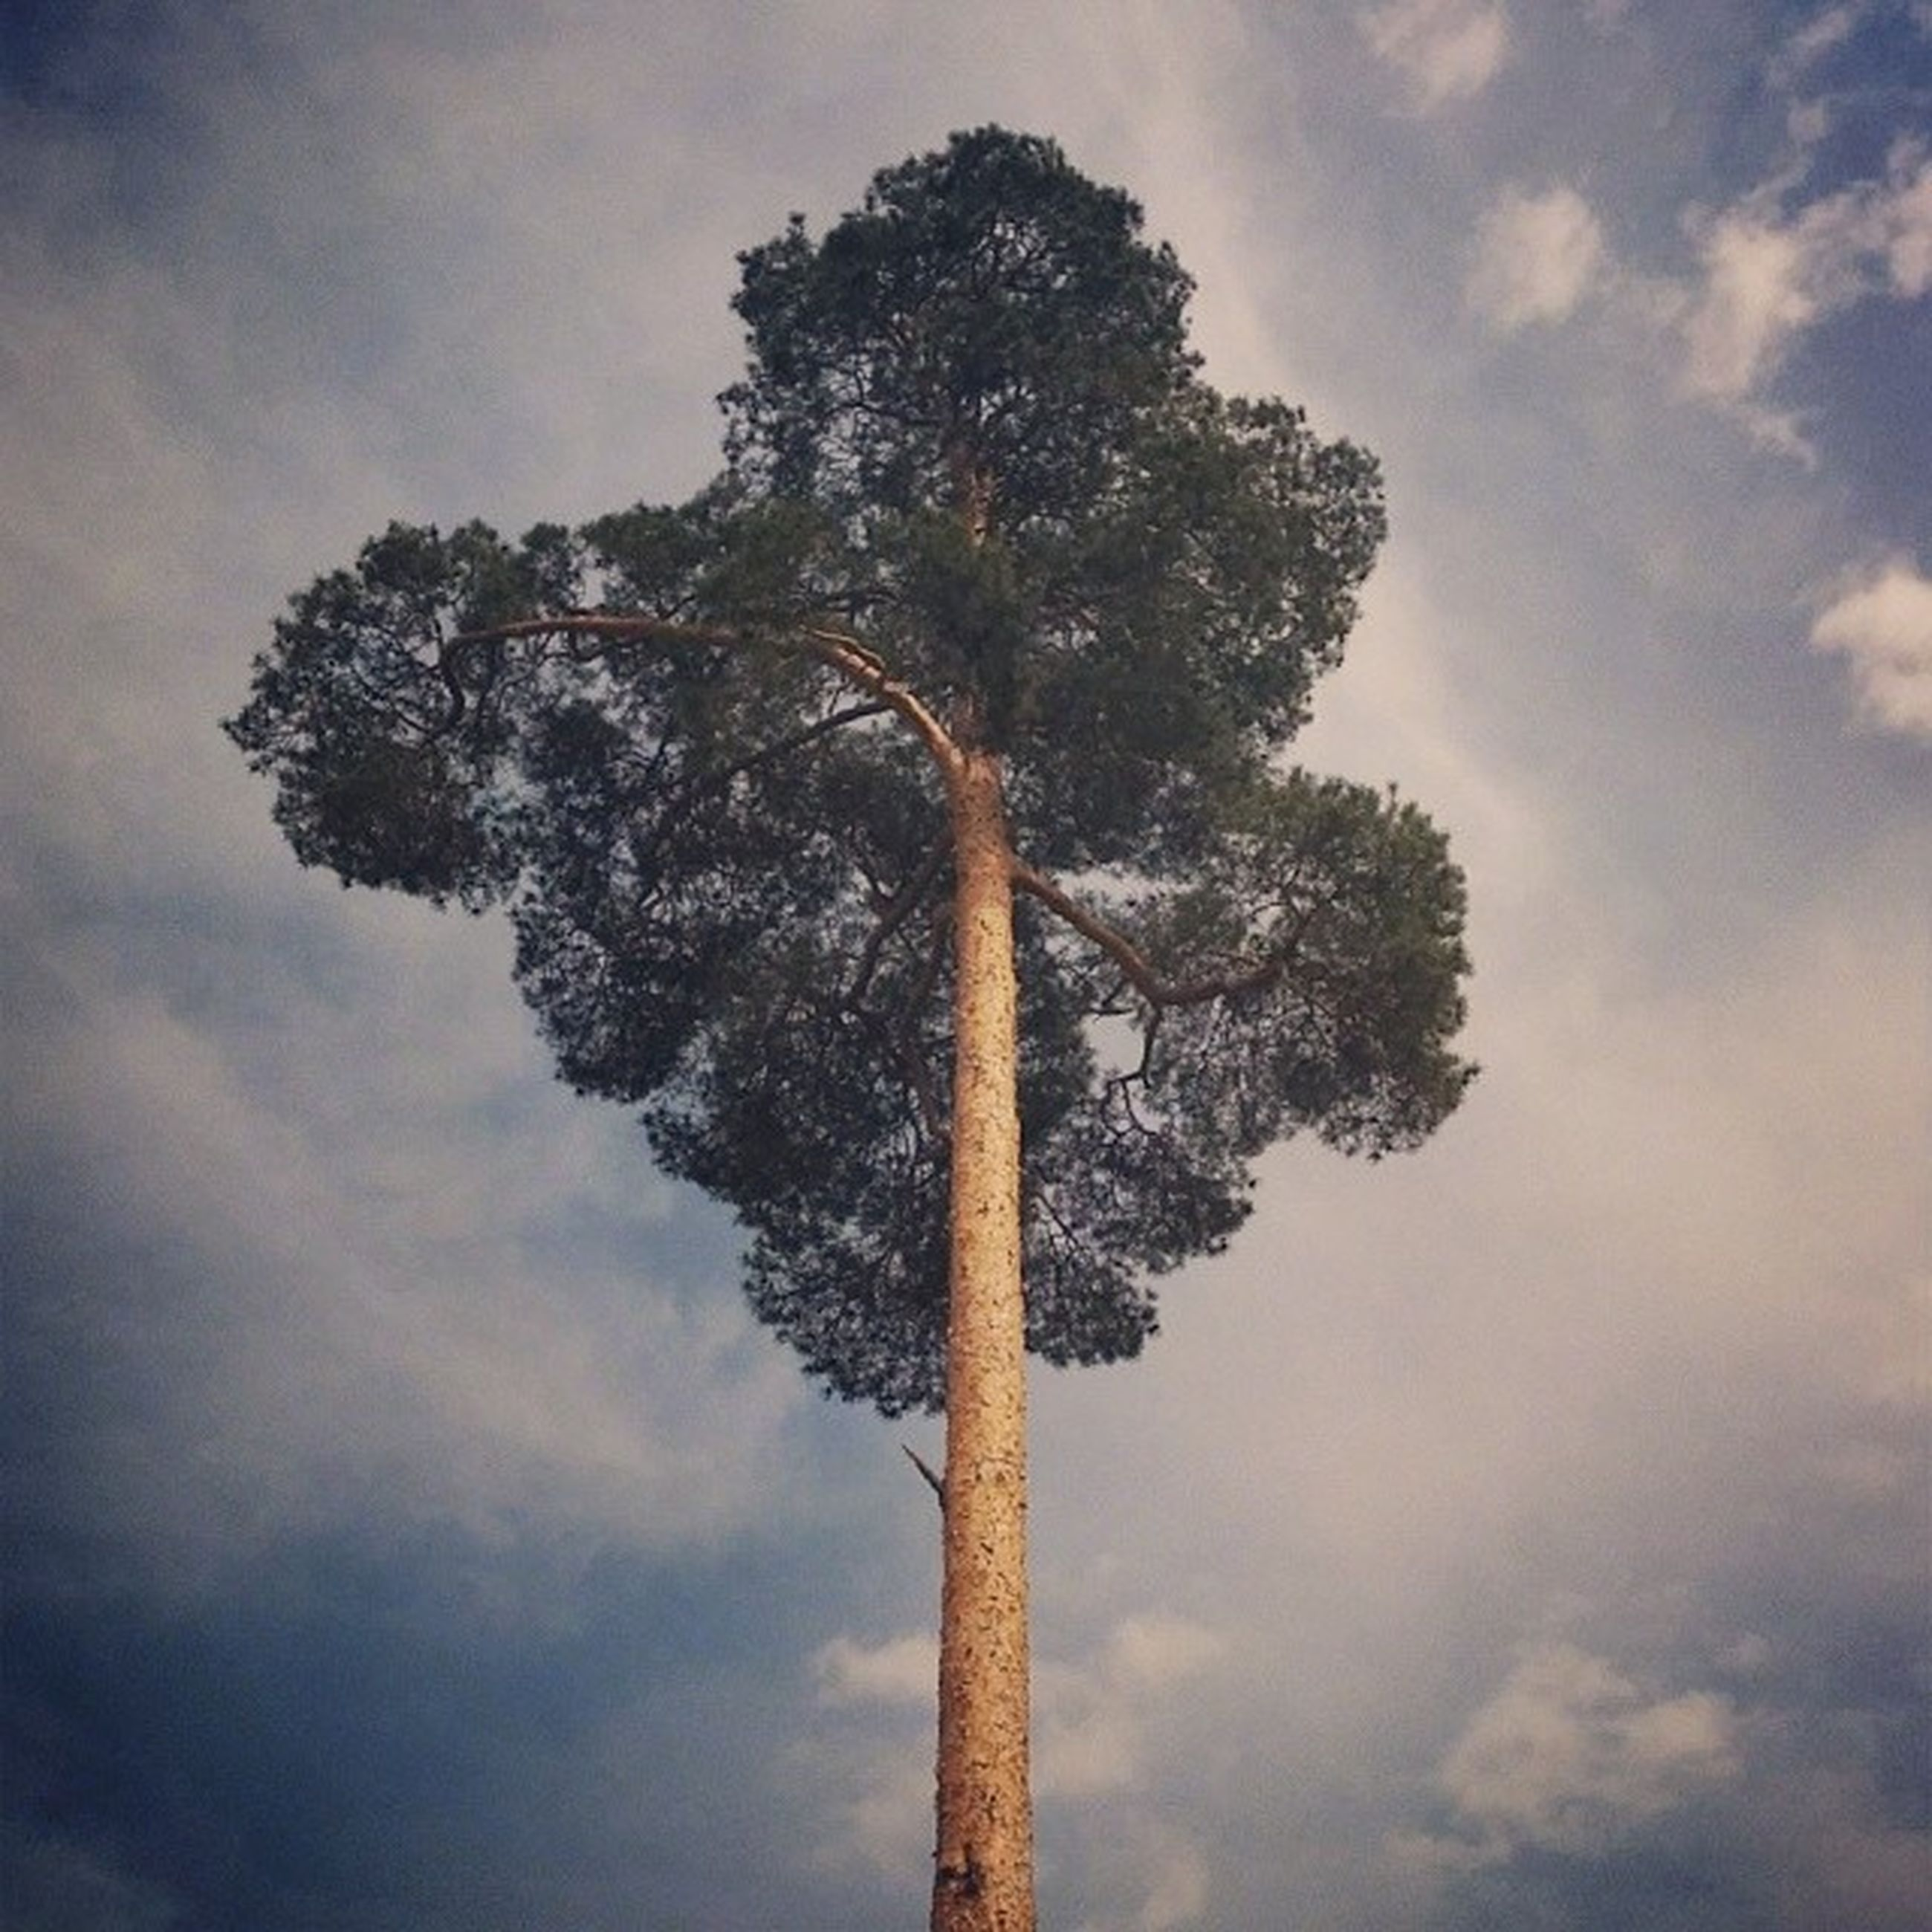 tree, sky, low angle view, cloud - sky, tranquility, tree trunk, cloudy, nature, cloud, silhouette, tranquil scene, growth, beauty in nature, scenics, branch, palm tree, outdoors, no people, bare tree, day